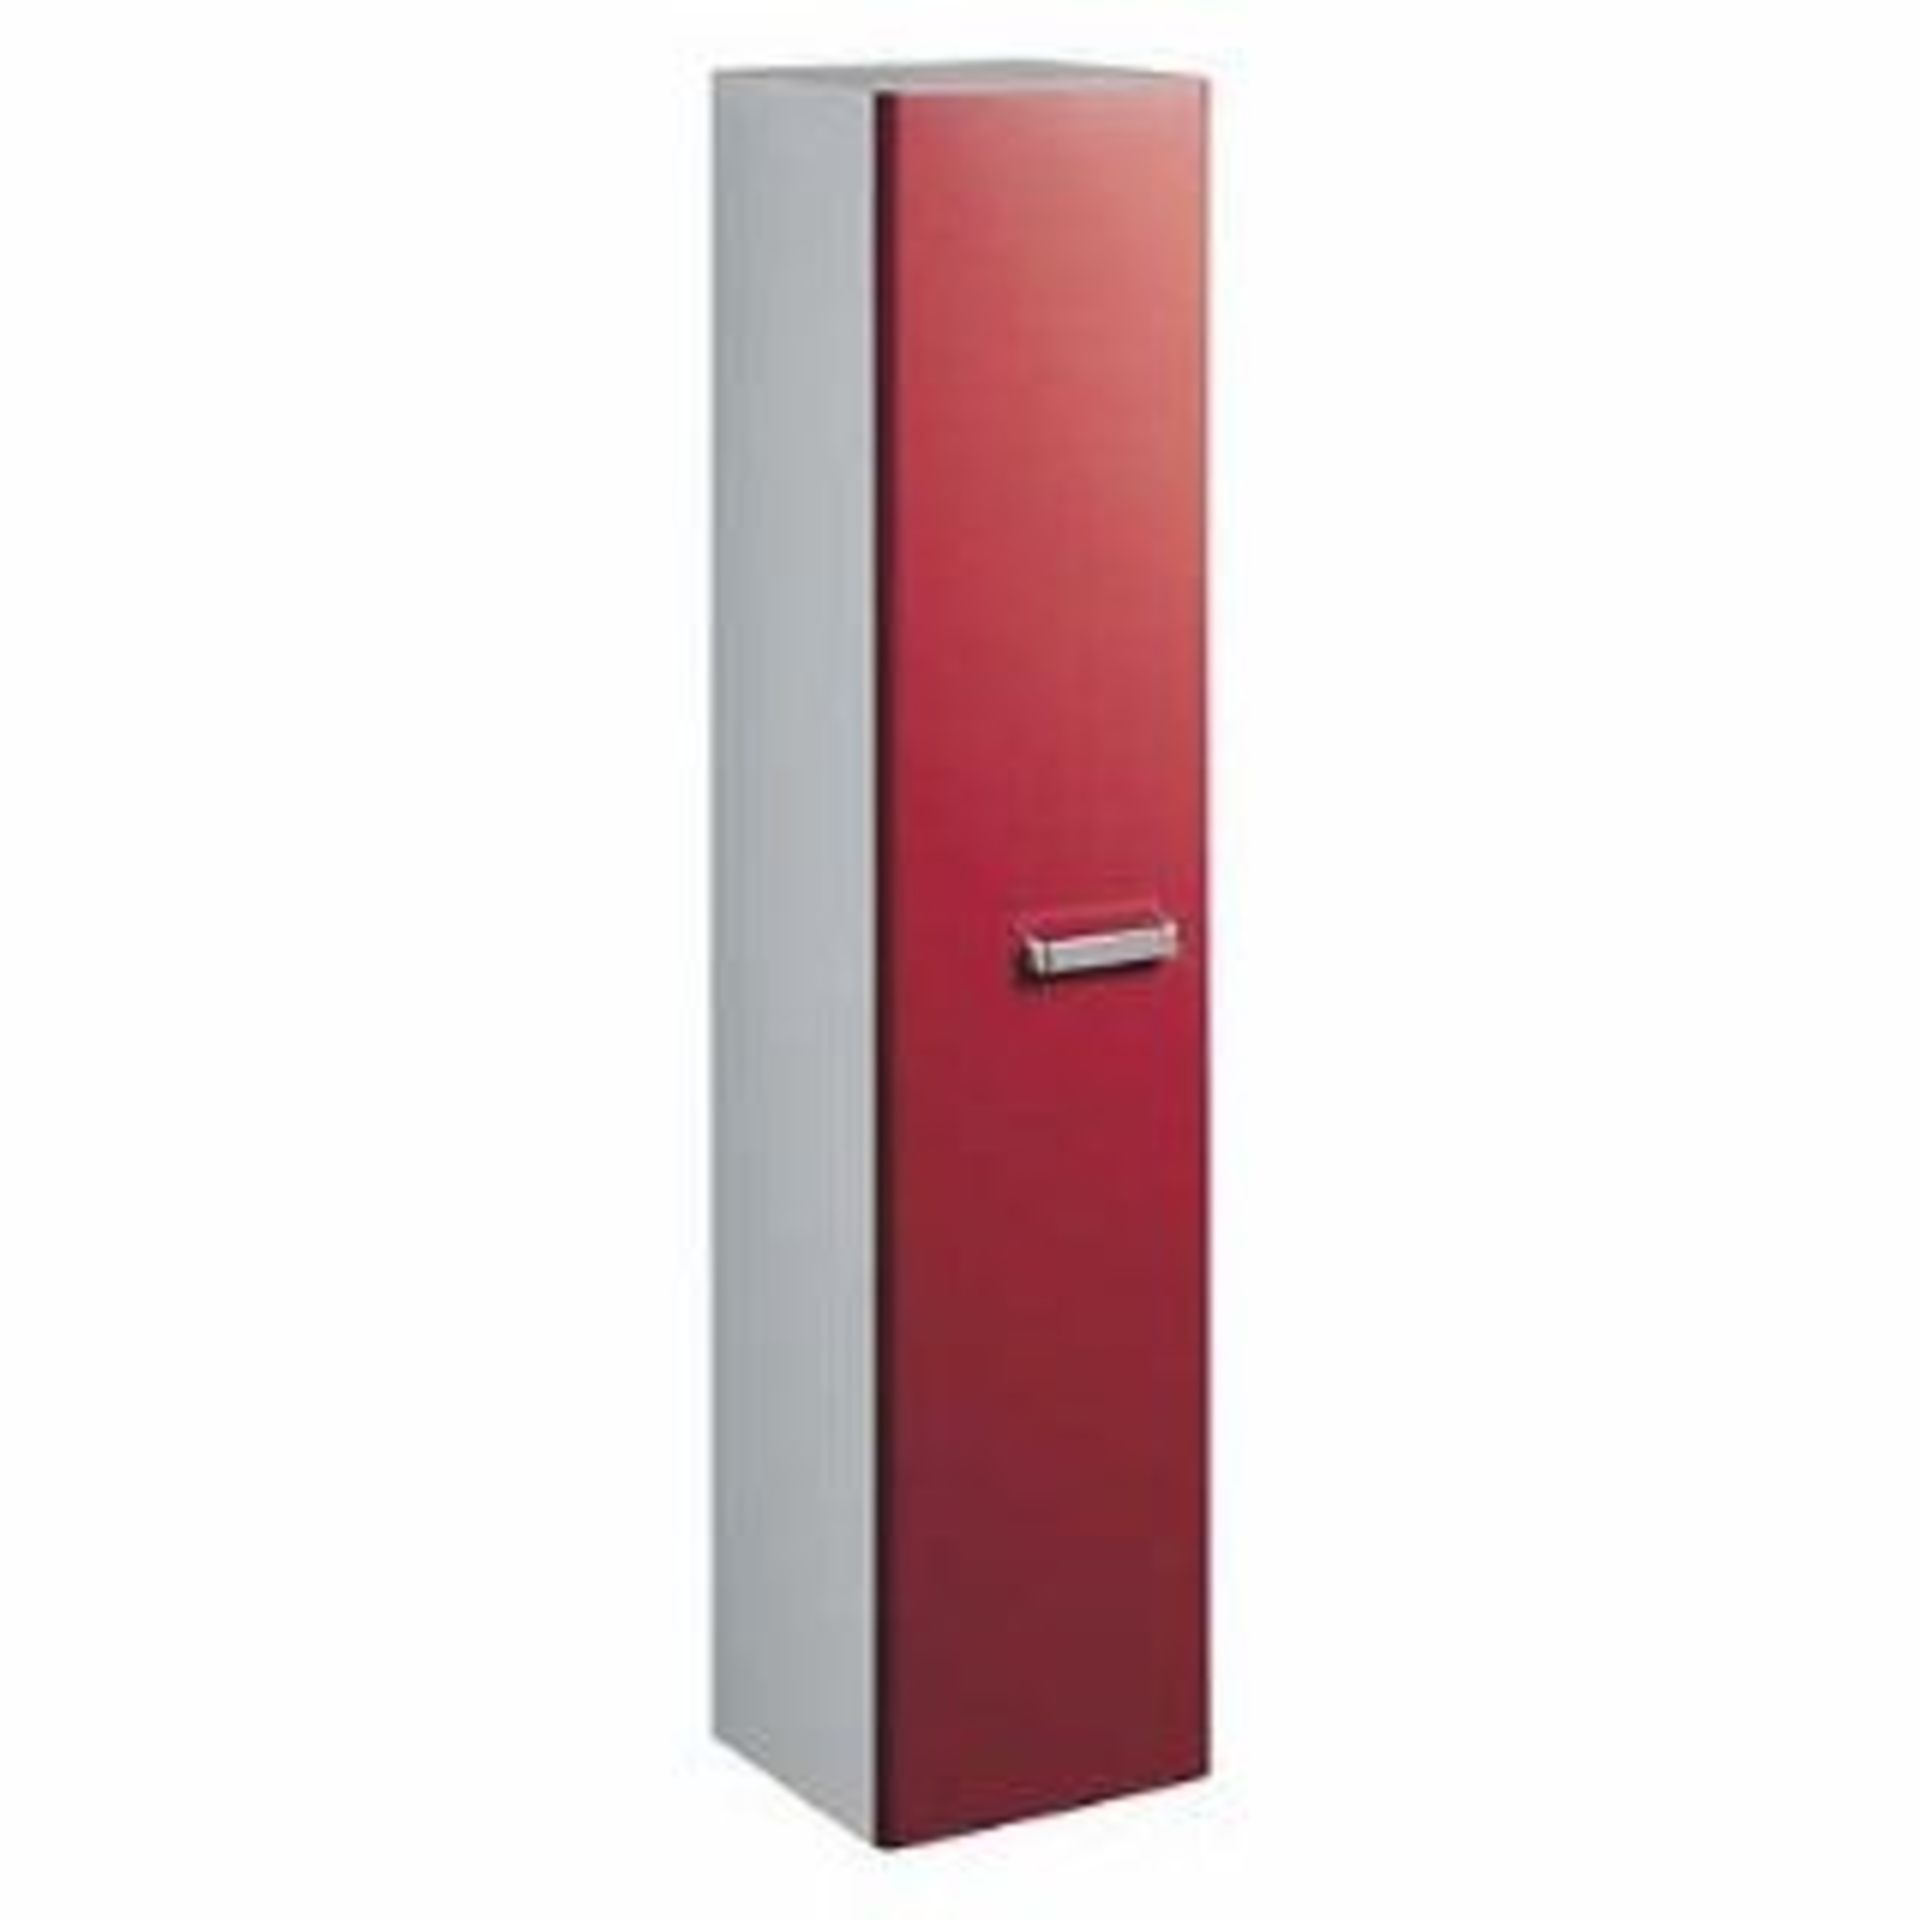 Lot 675 - (SA24) Twyford 1730mm Galerie Plan Red Tall Furniture Unit. RRP £666.99. Red gloss finish Wa...